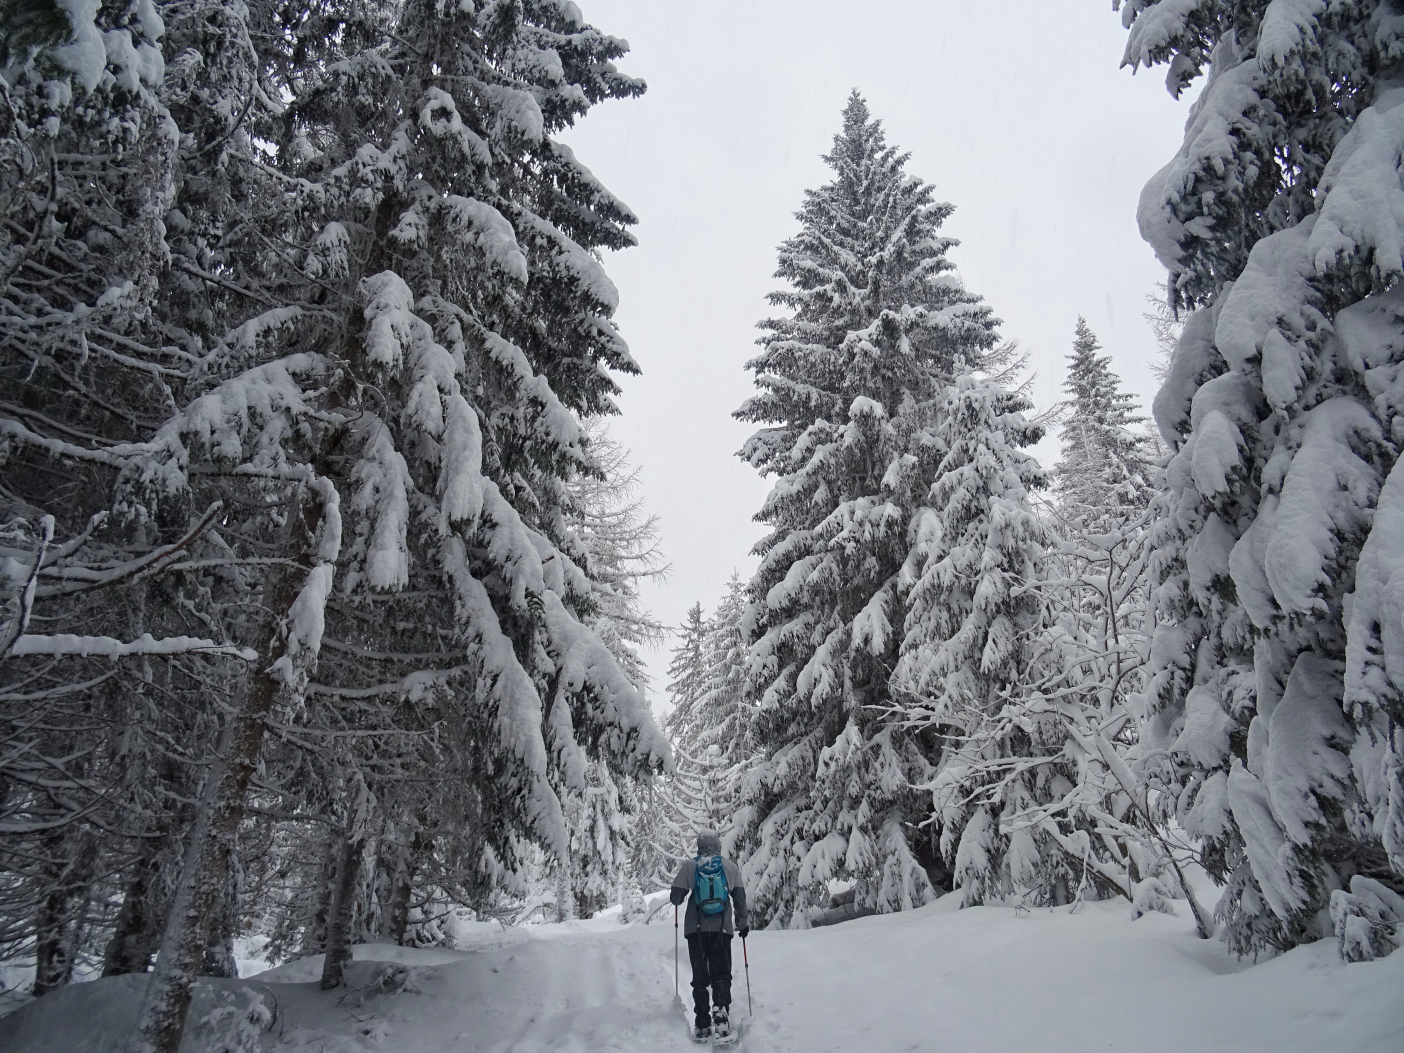 Man walking through snowy woods